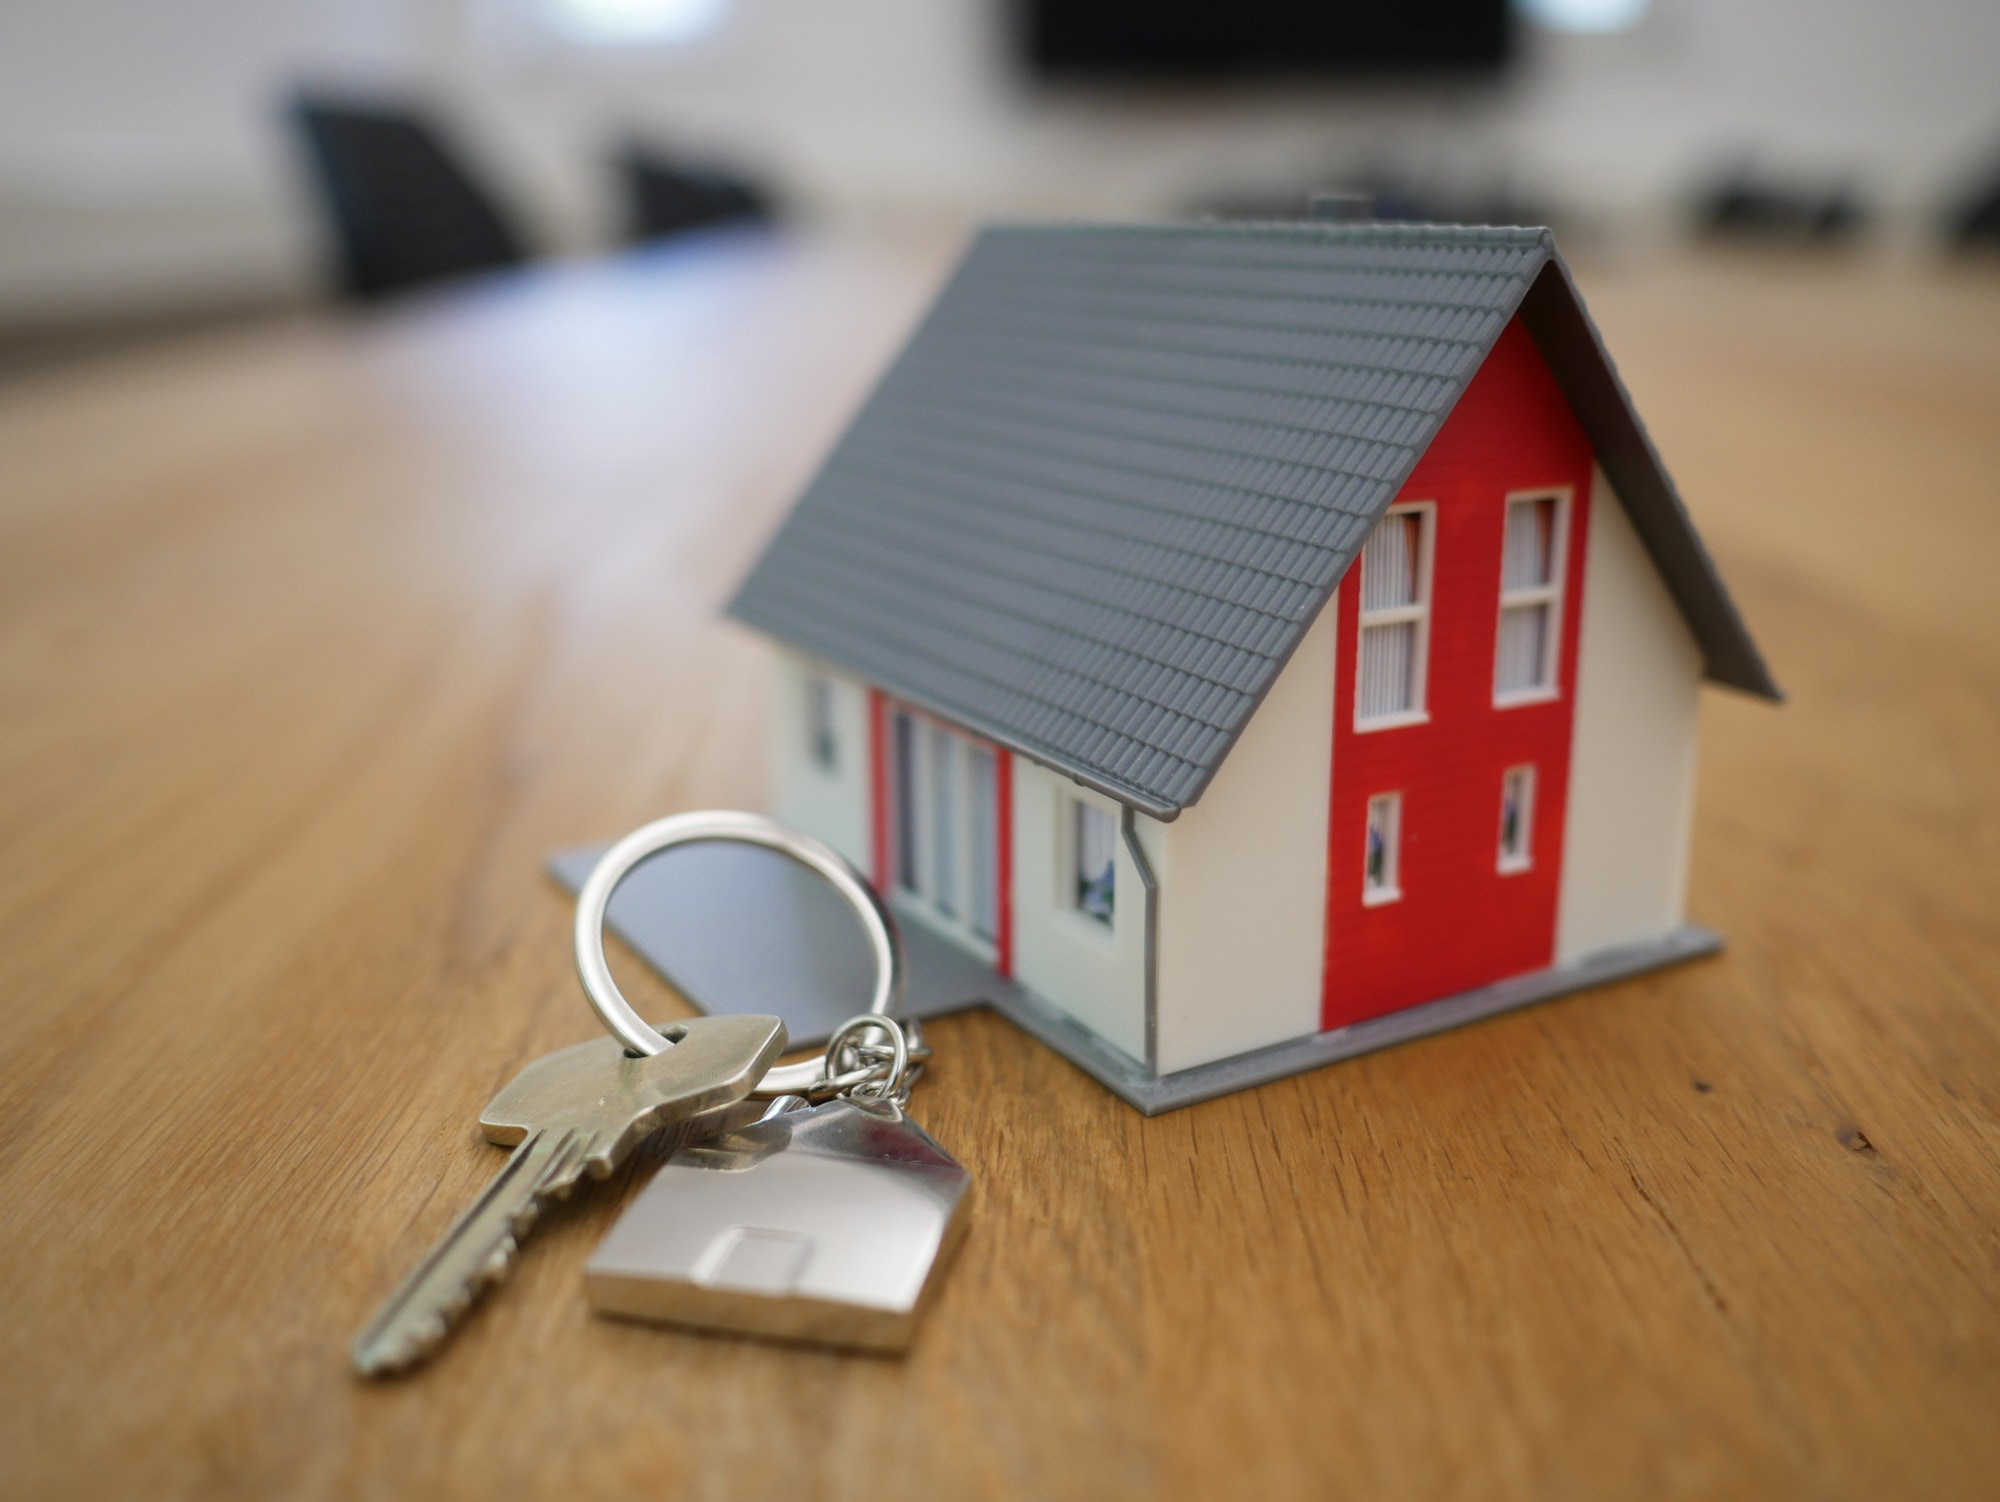 Buying A Home In Ghana Might Actually Be Better Than Building One - Here's Why